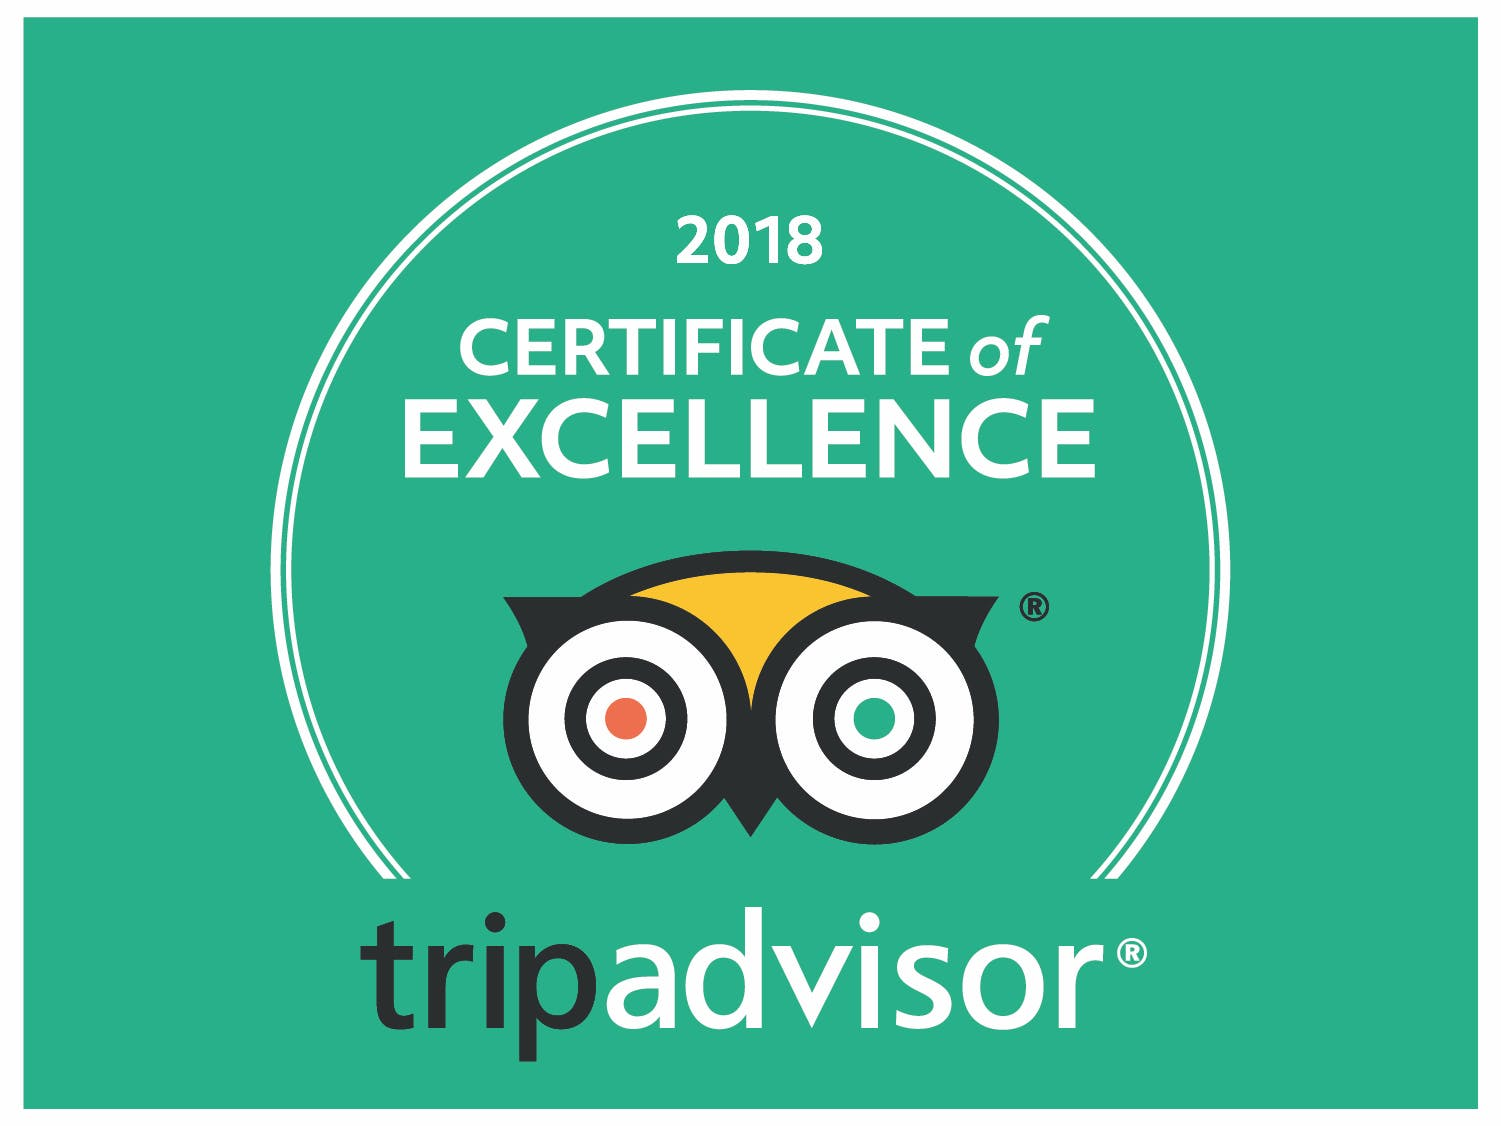 Looking for kalbarri accommodation tripadvisor ? certificate of excellence 2018